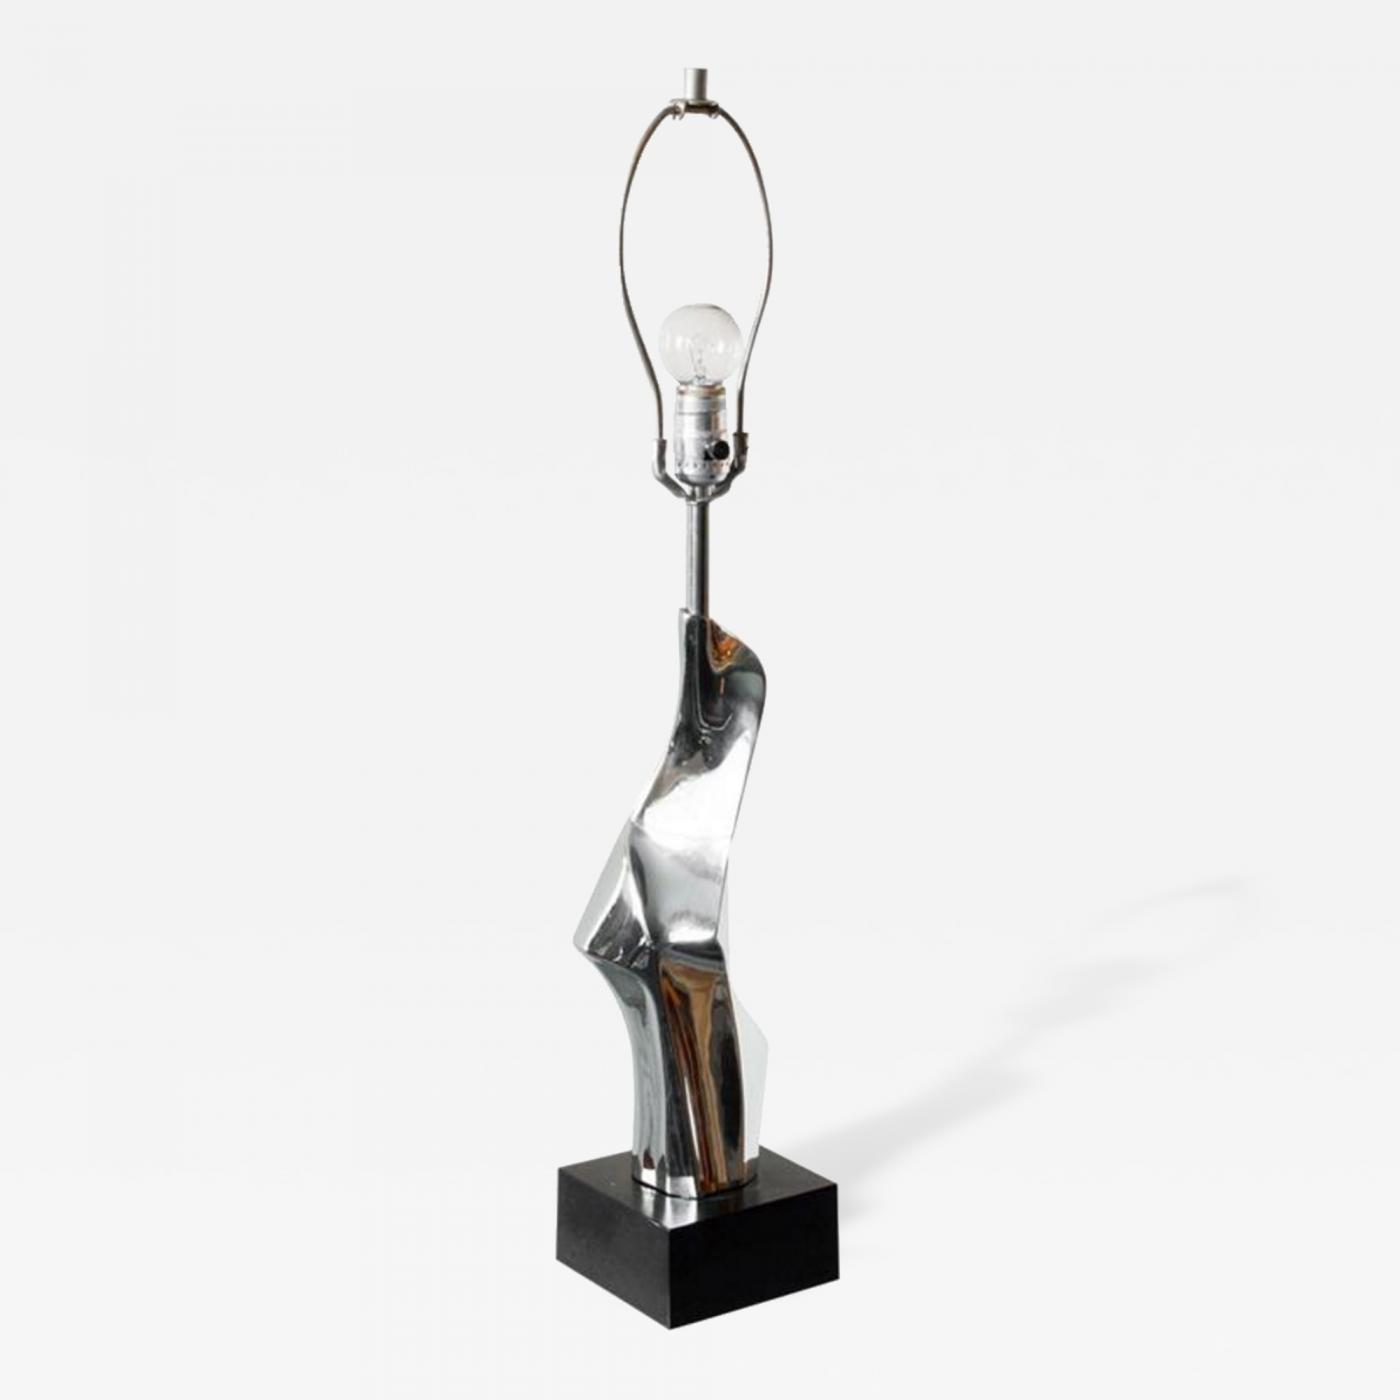 Laurel lamp company mirrored chrome amorphous table lamp by laurel listings furniture lighting table lamps geotapseo Images